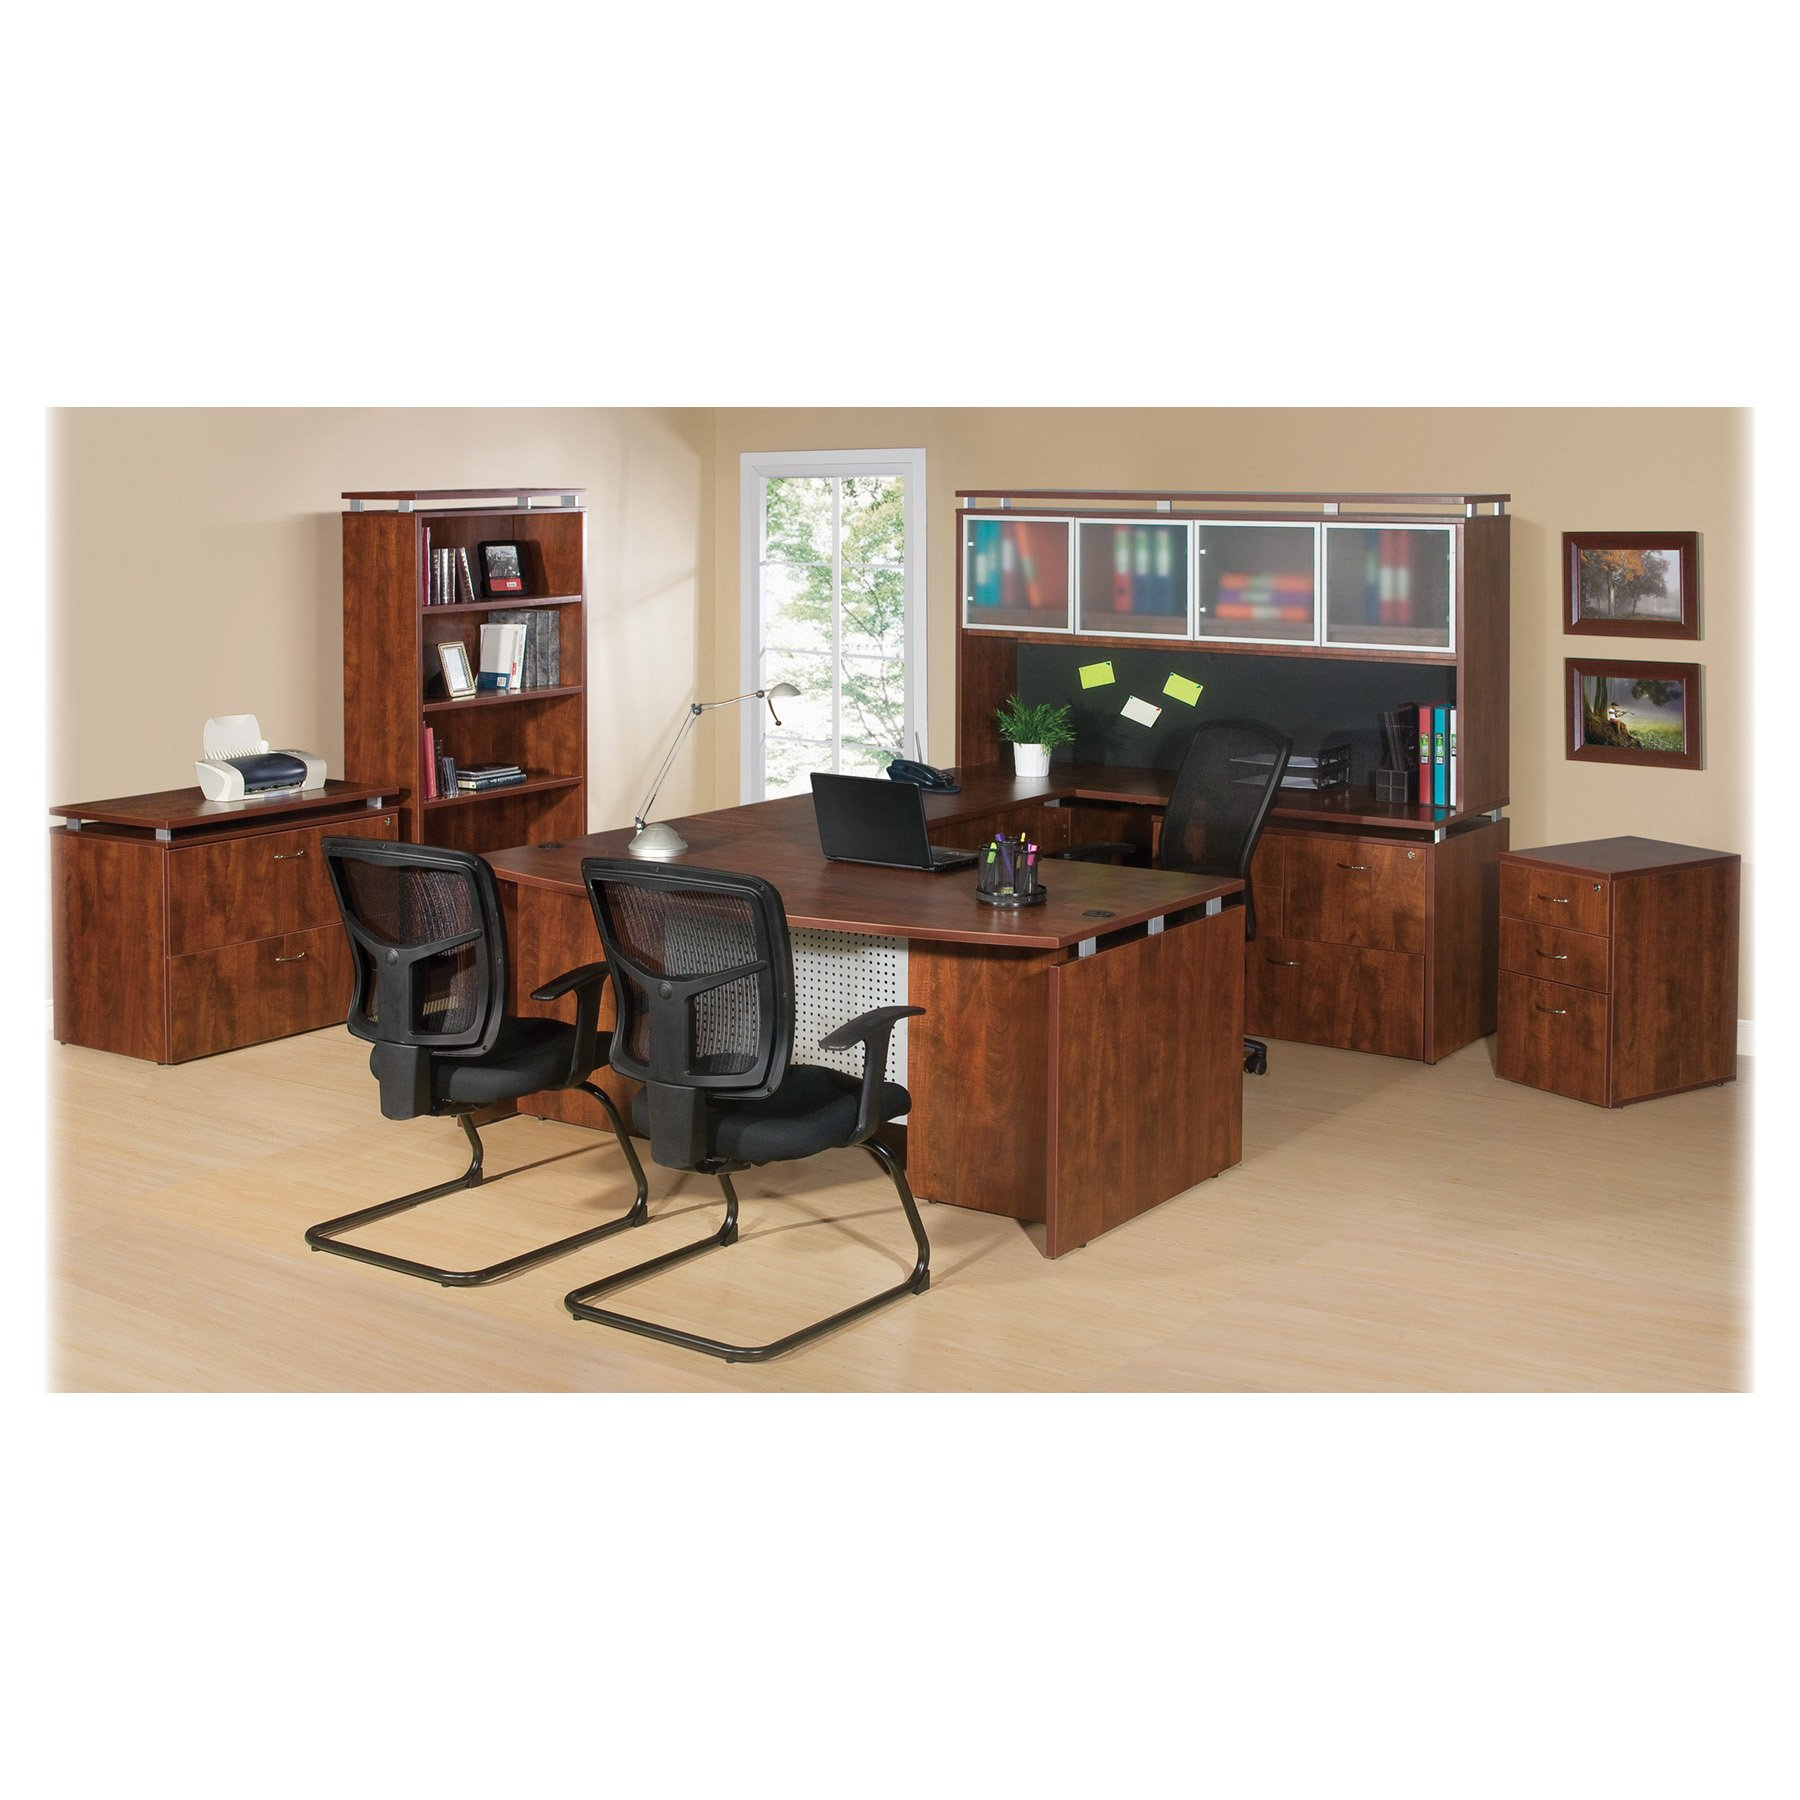 Lorell LLR68705 Executive Desk, Cherry by Lorell (Image #2)